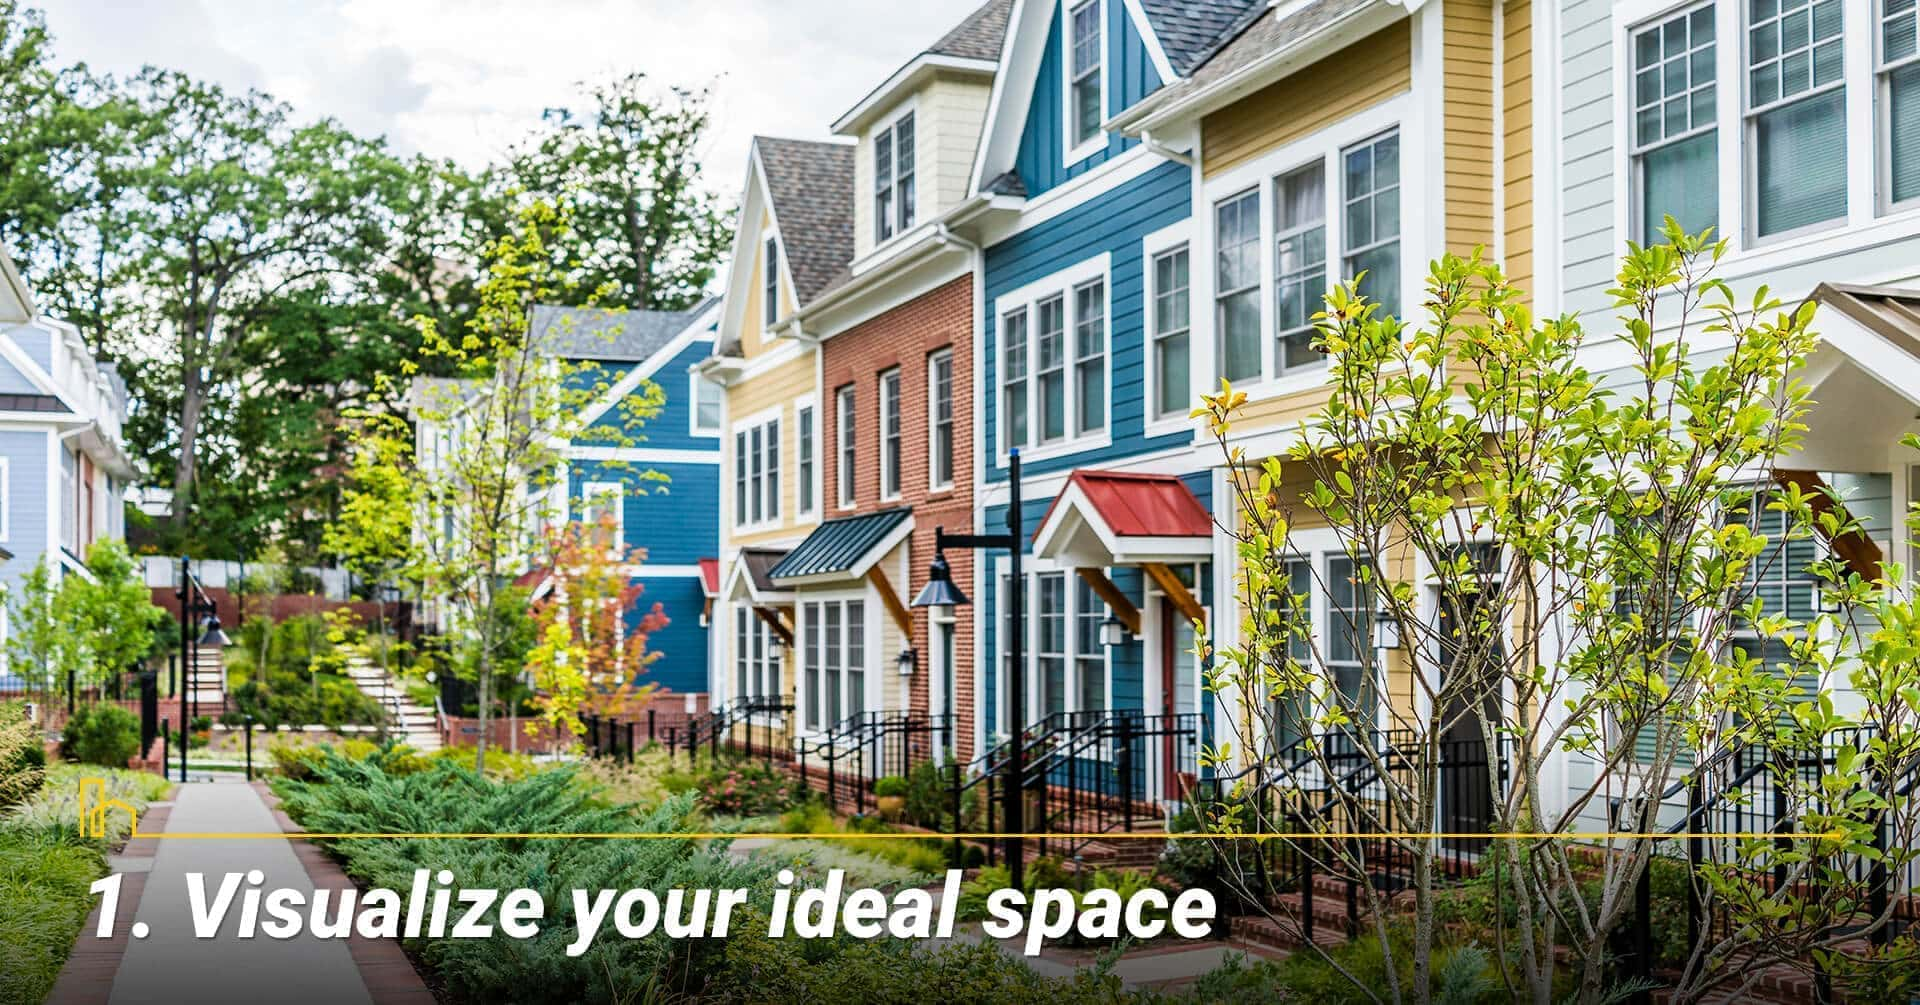 Visualize your ideal space